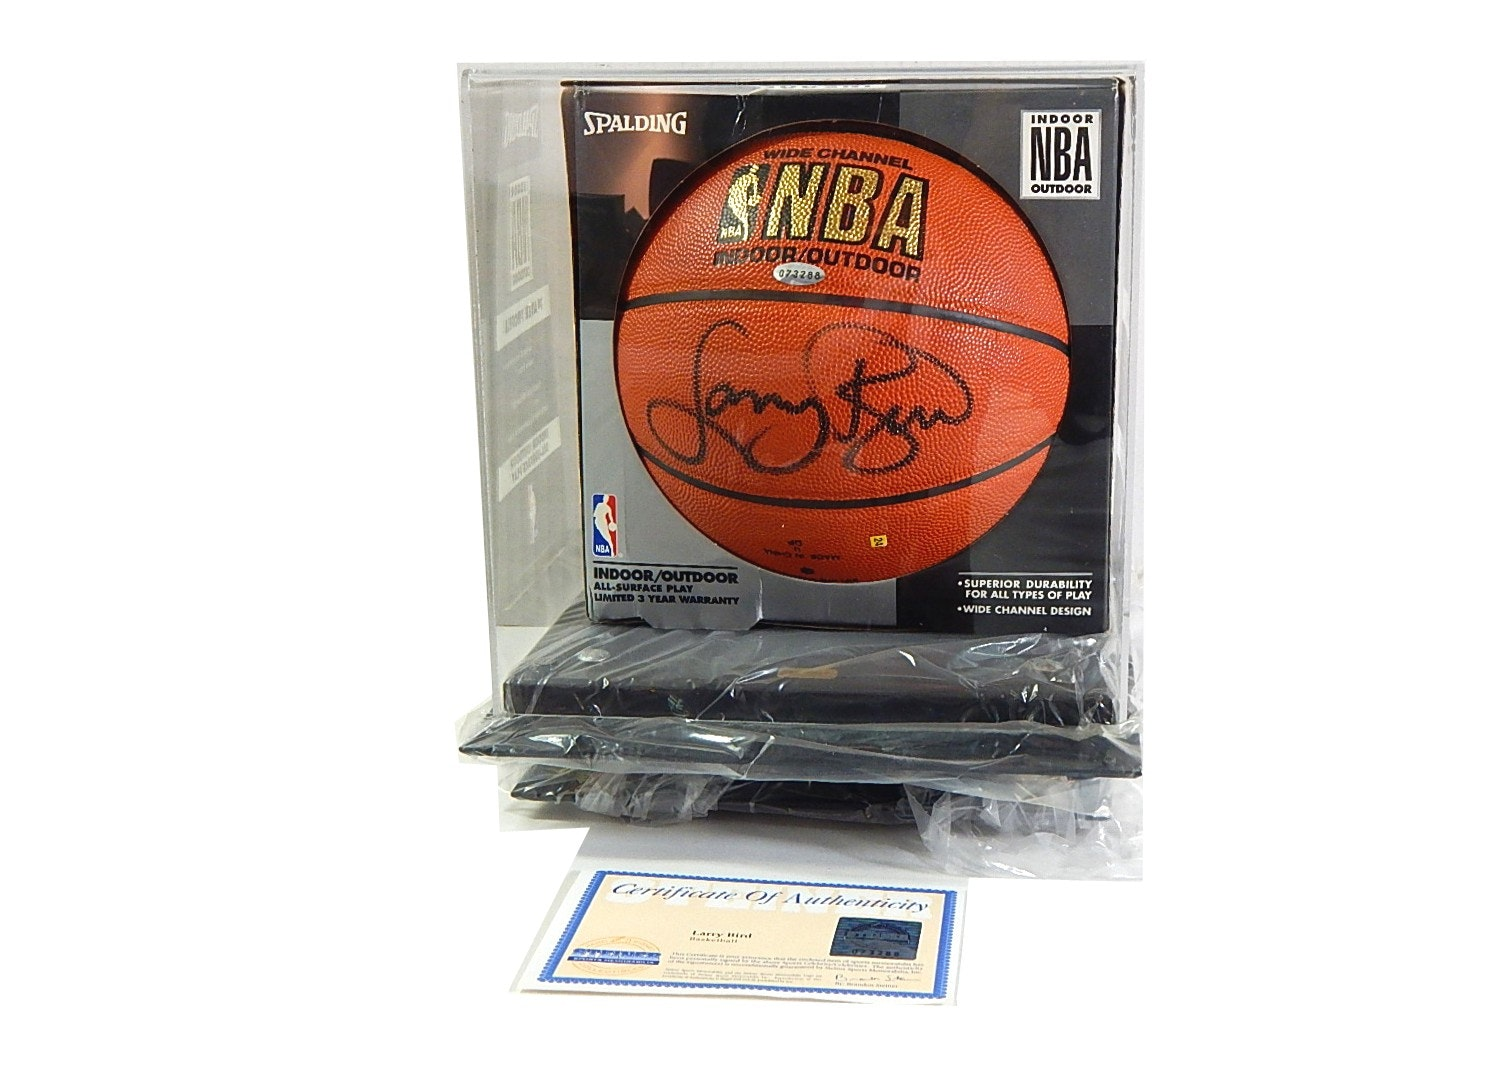 Steiner Sports Larry Bird NBA Signed Basketball with COA